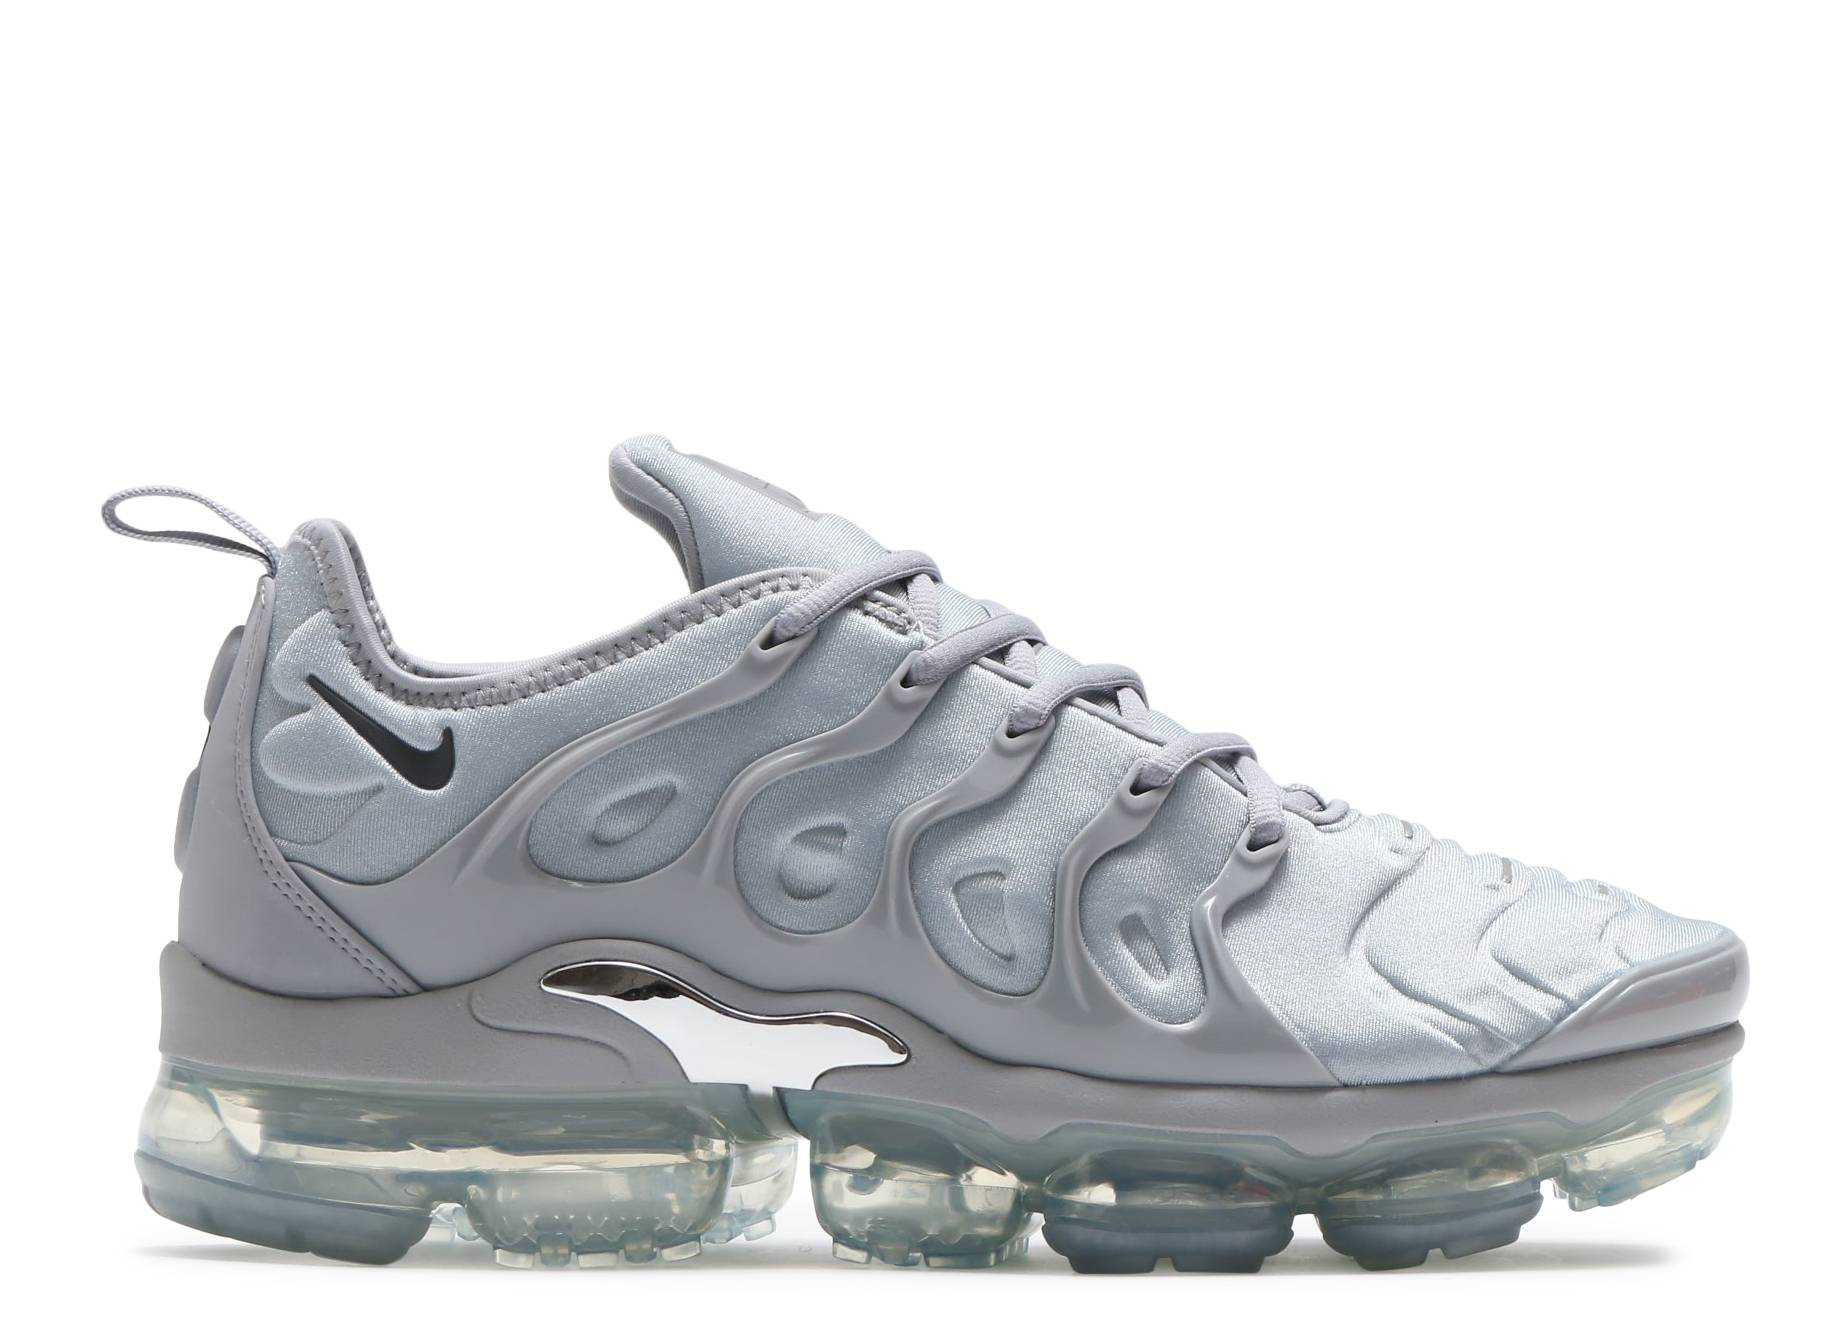 c8baf4abd24 AIR VAPORMAX PLUS - Nike - 924453 005 - wolf grey dark grey-metallic ...